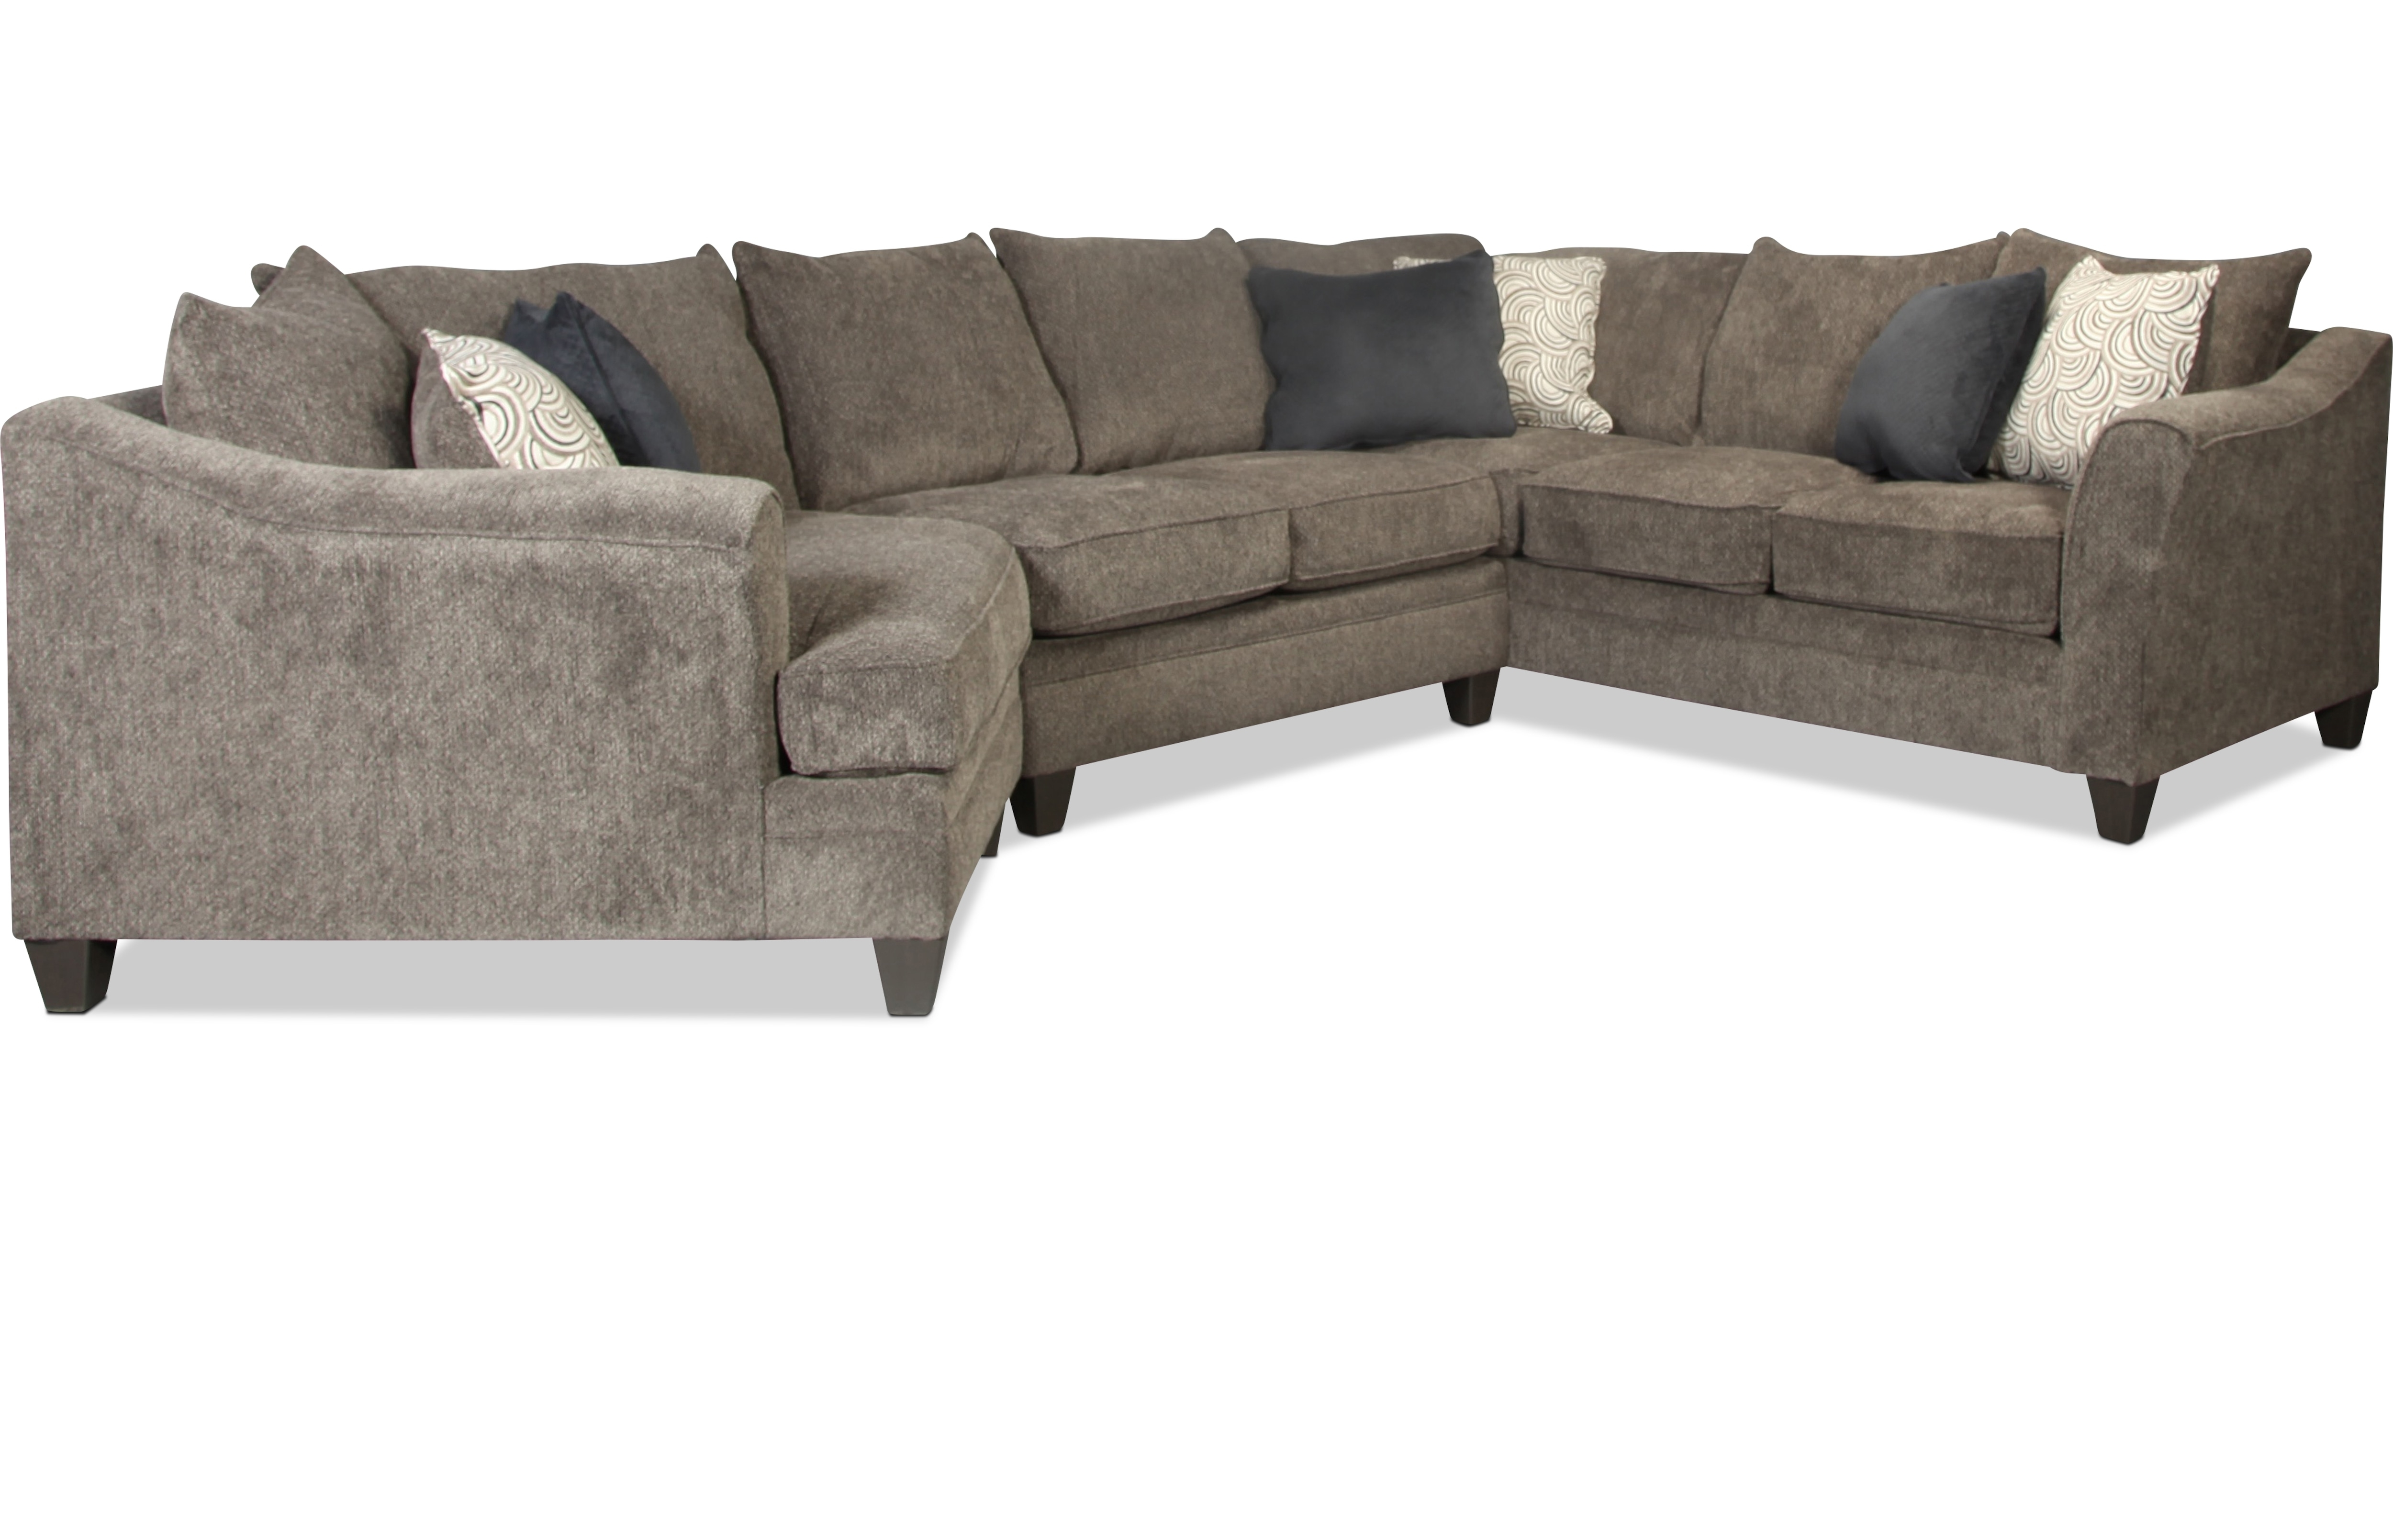 Sectionals | Levin Furniture Within Sierra Down 3 Piece Sectionals With Laf Chaise (View 16 of 25)